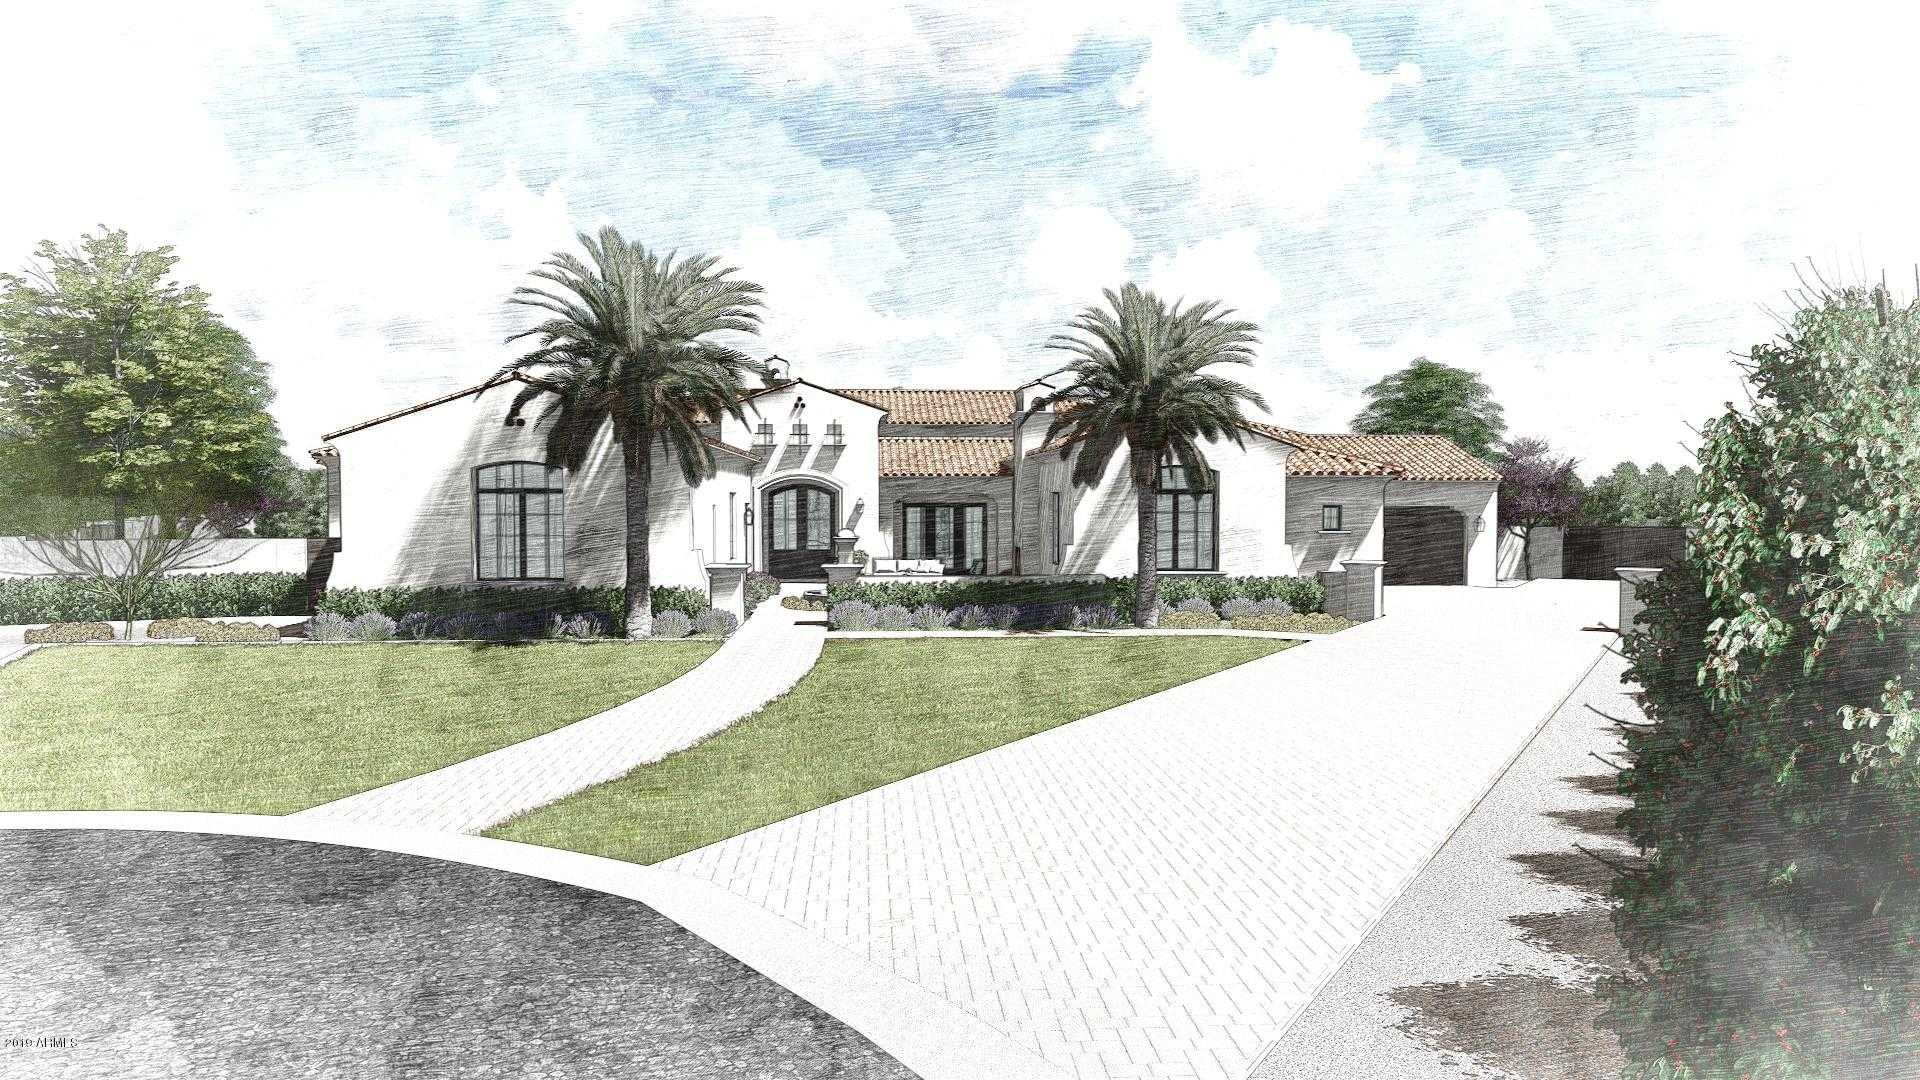 $4,395,000 - 5Br/6Ba - Home for Sale in Casa Blanca Estates Lot 20-37 & Tr A, Paradise Valley